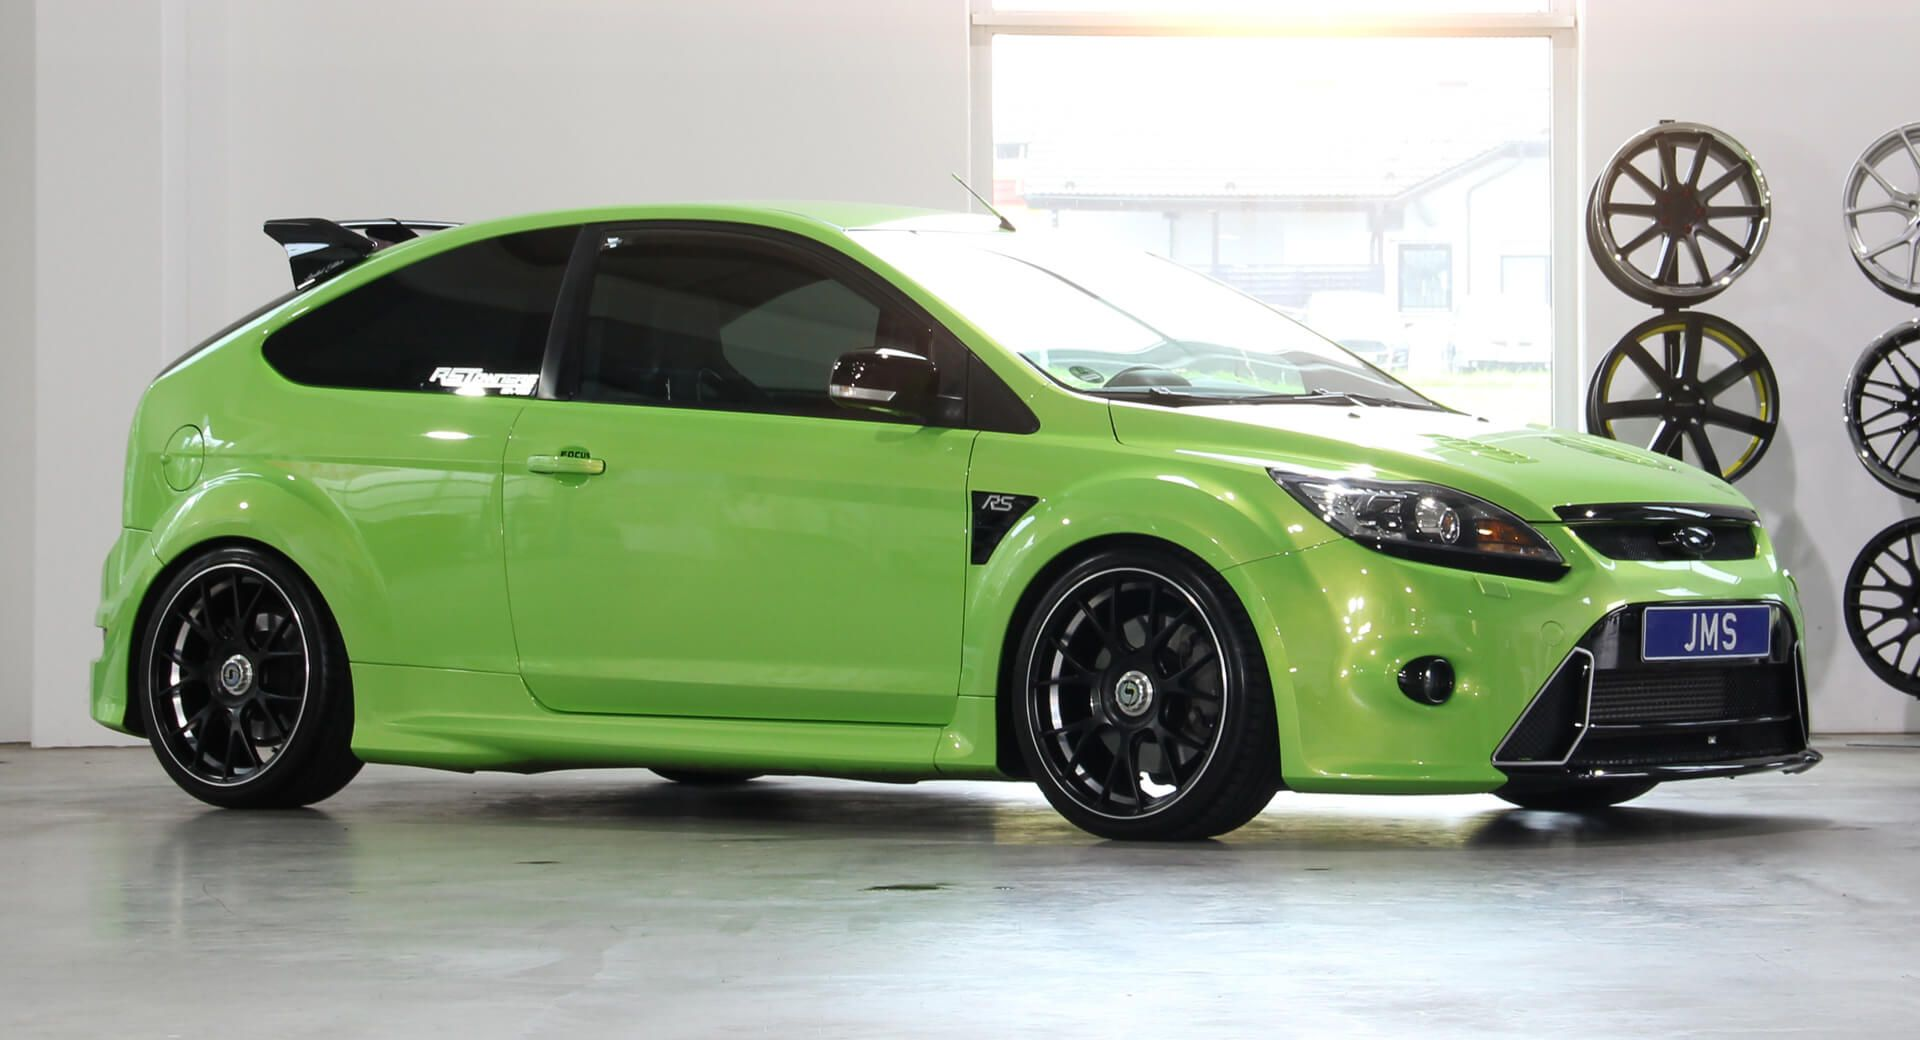 Ford Focus Rs Mk2 Gets Some Fine Tuning From Jms Ford Fordfocusrs Jms Tuning Cars Carsofinstagram Carporn Carlifestyle Carnewsnetwork Carswithoutlimit In 2020